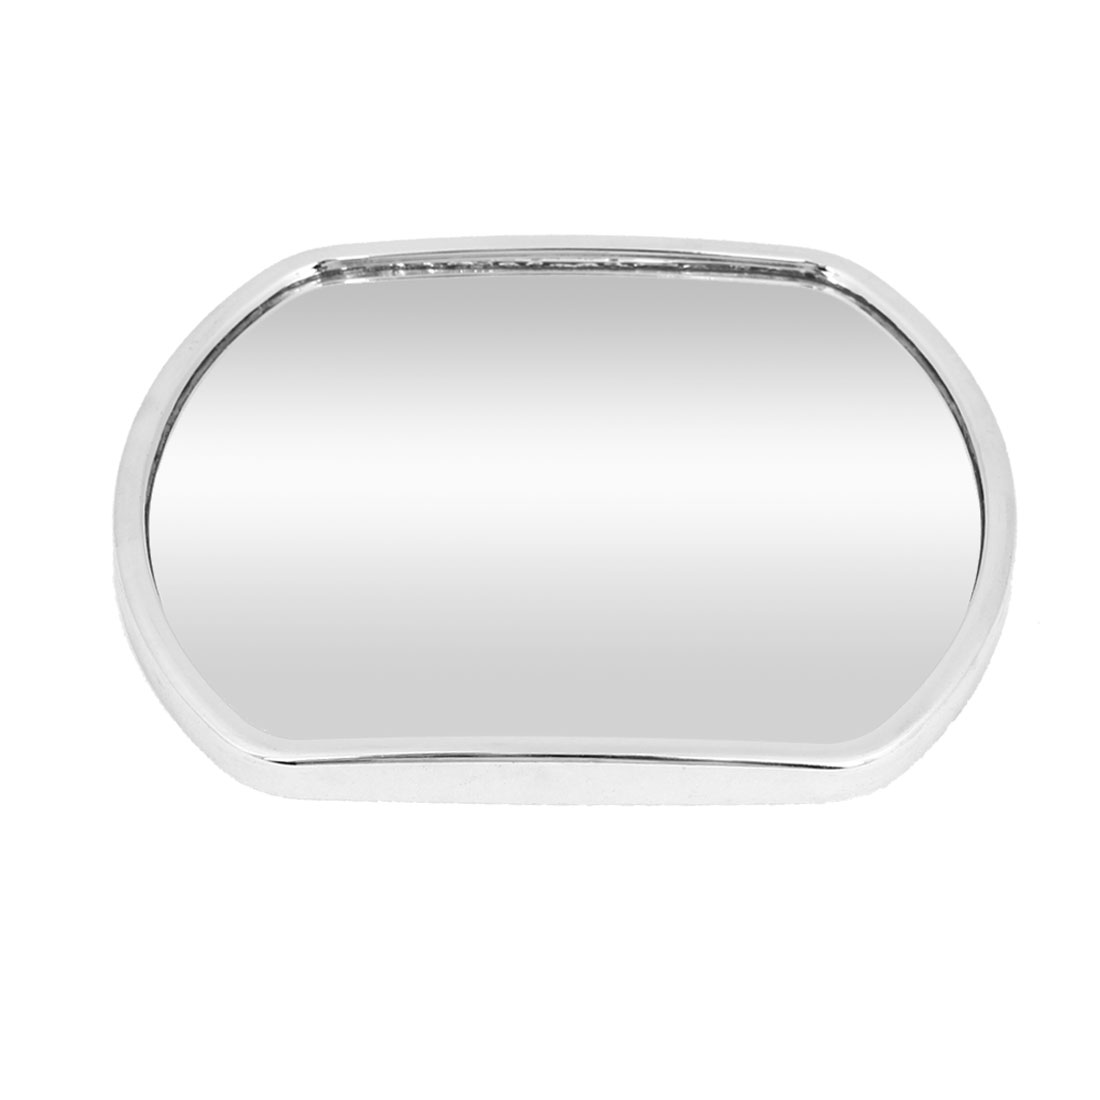 Rectangle Adhesive Wide Angle Convex Rear View Blind Spot Mirror for Truck SUV